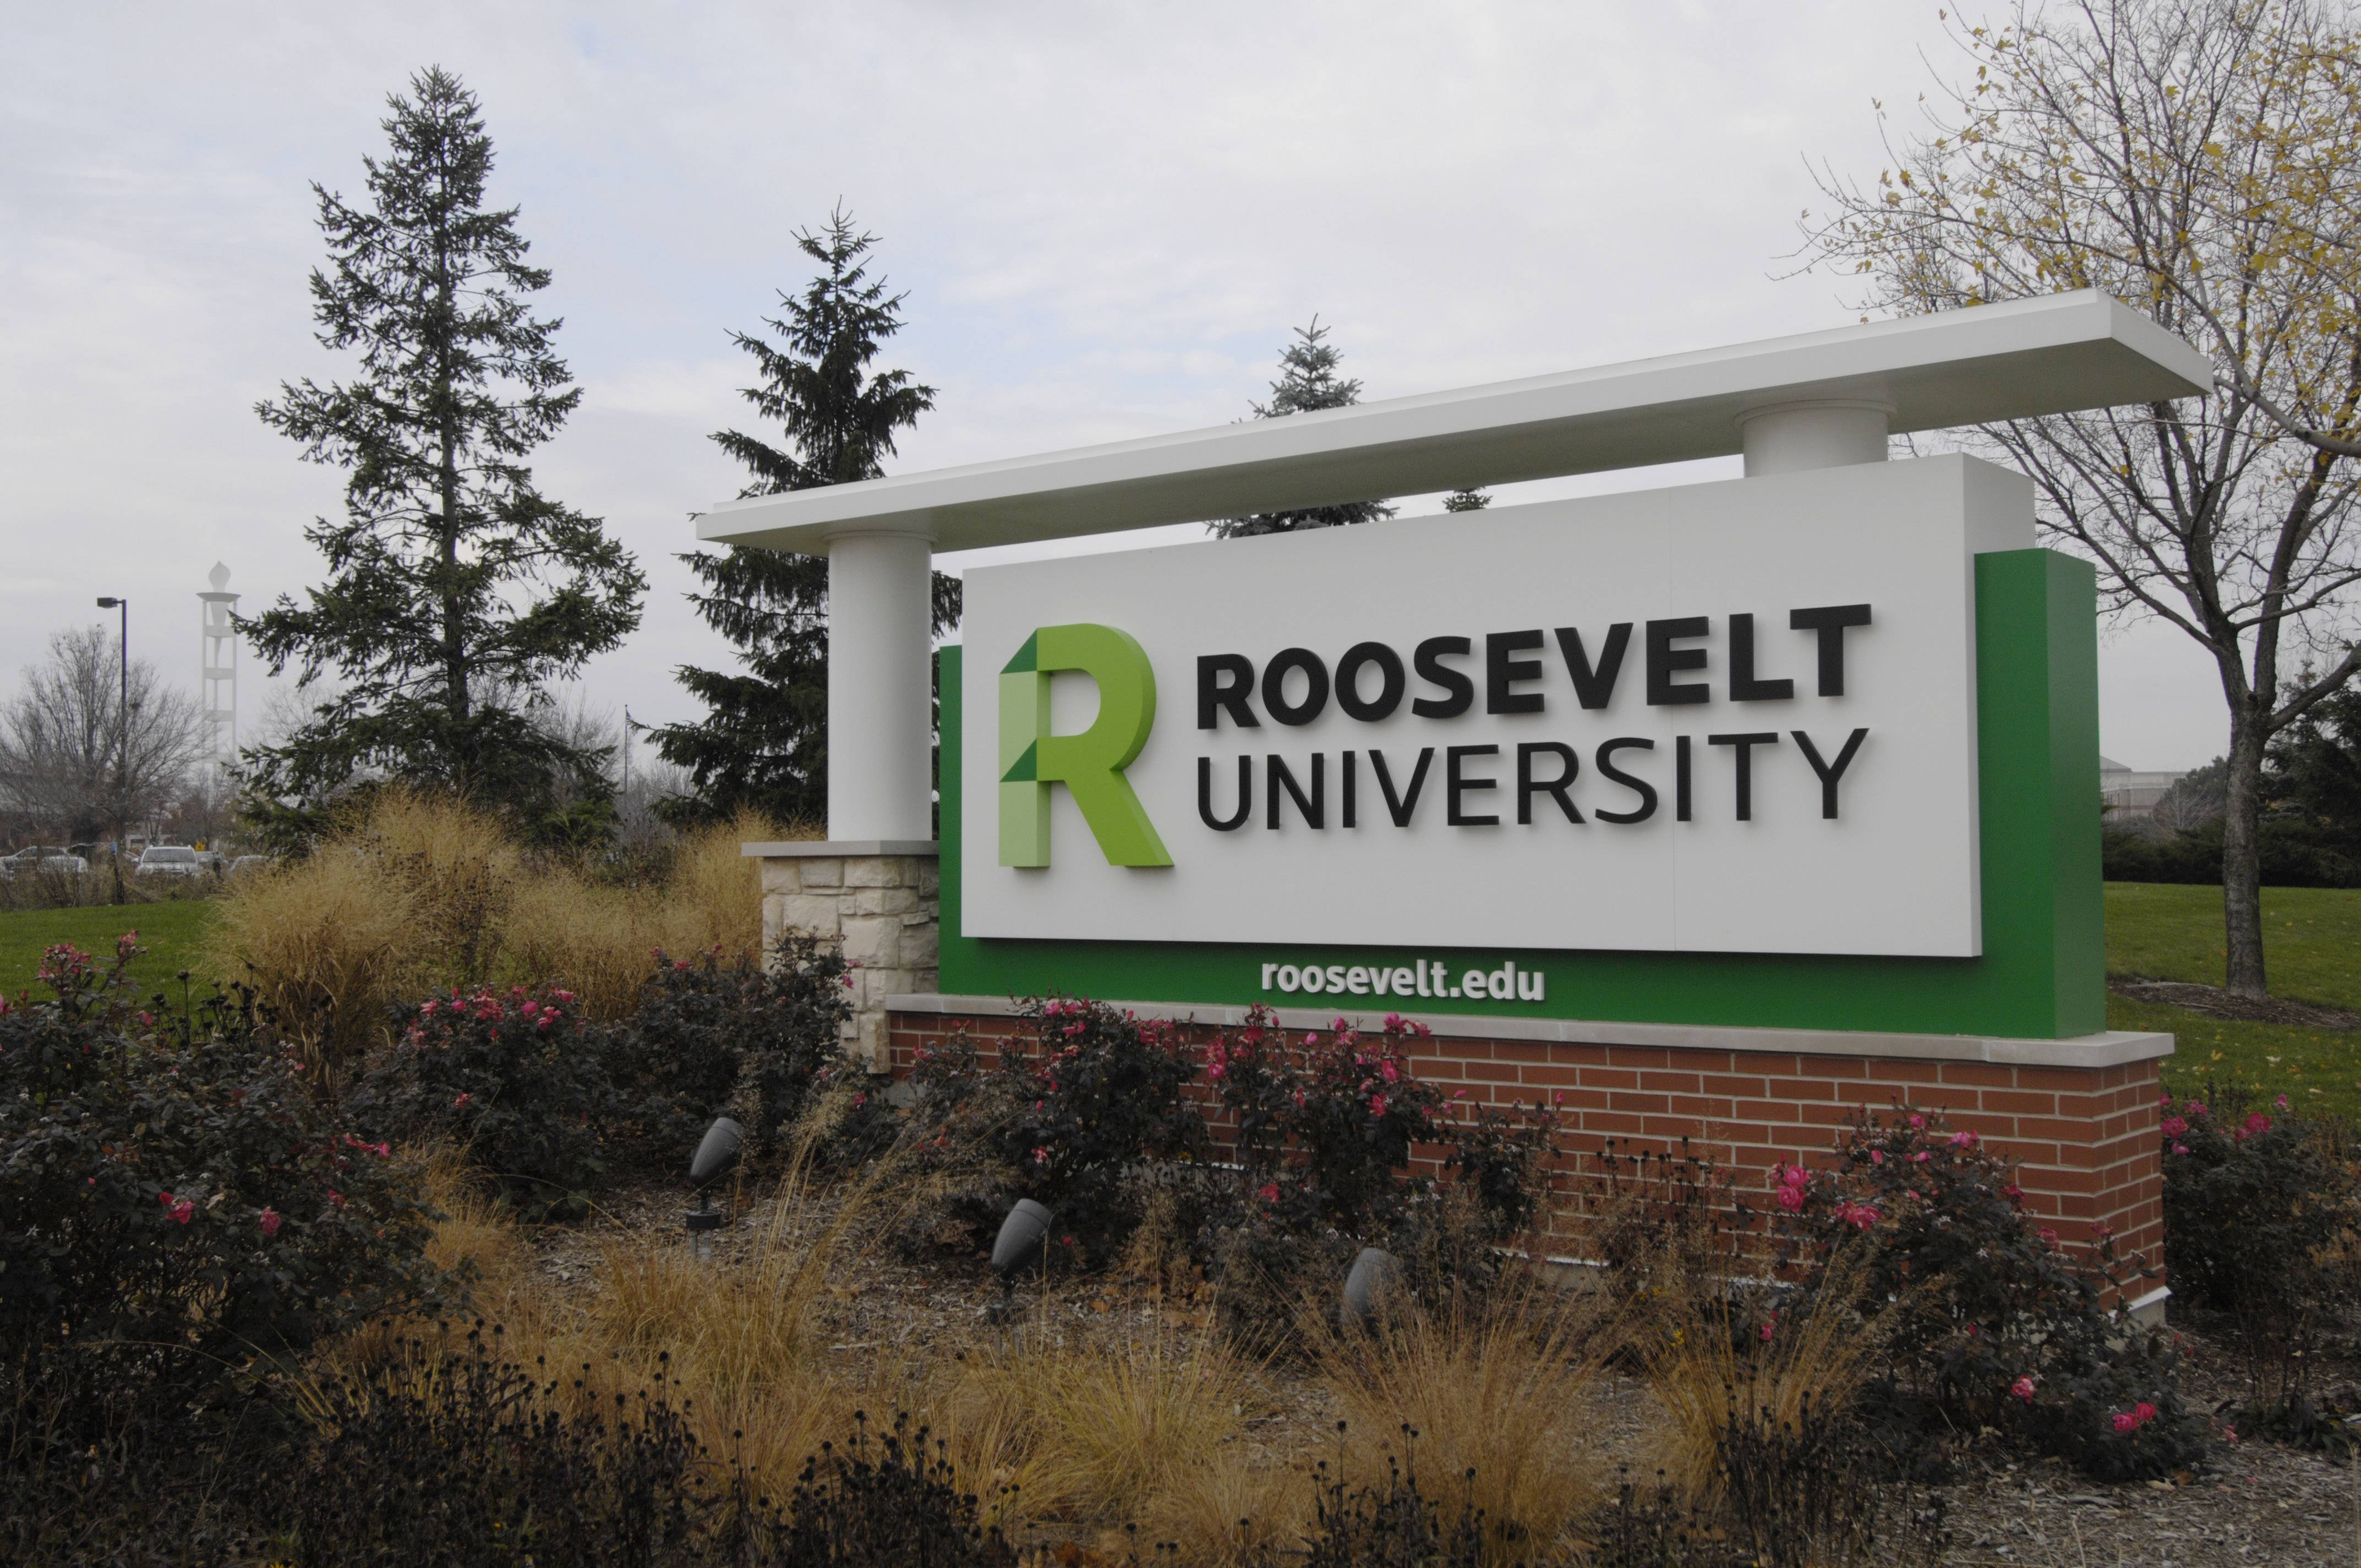 roosevelt university application essay